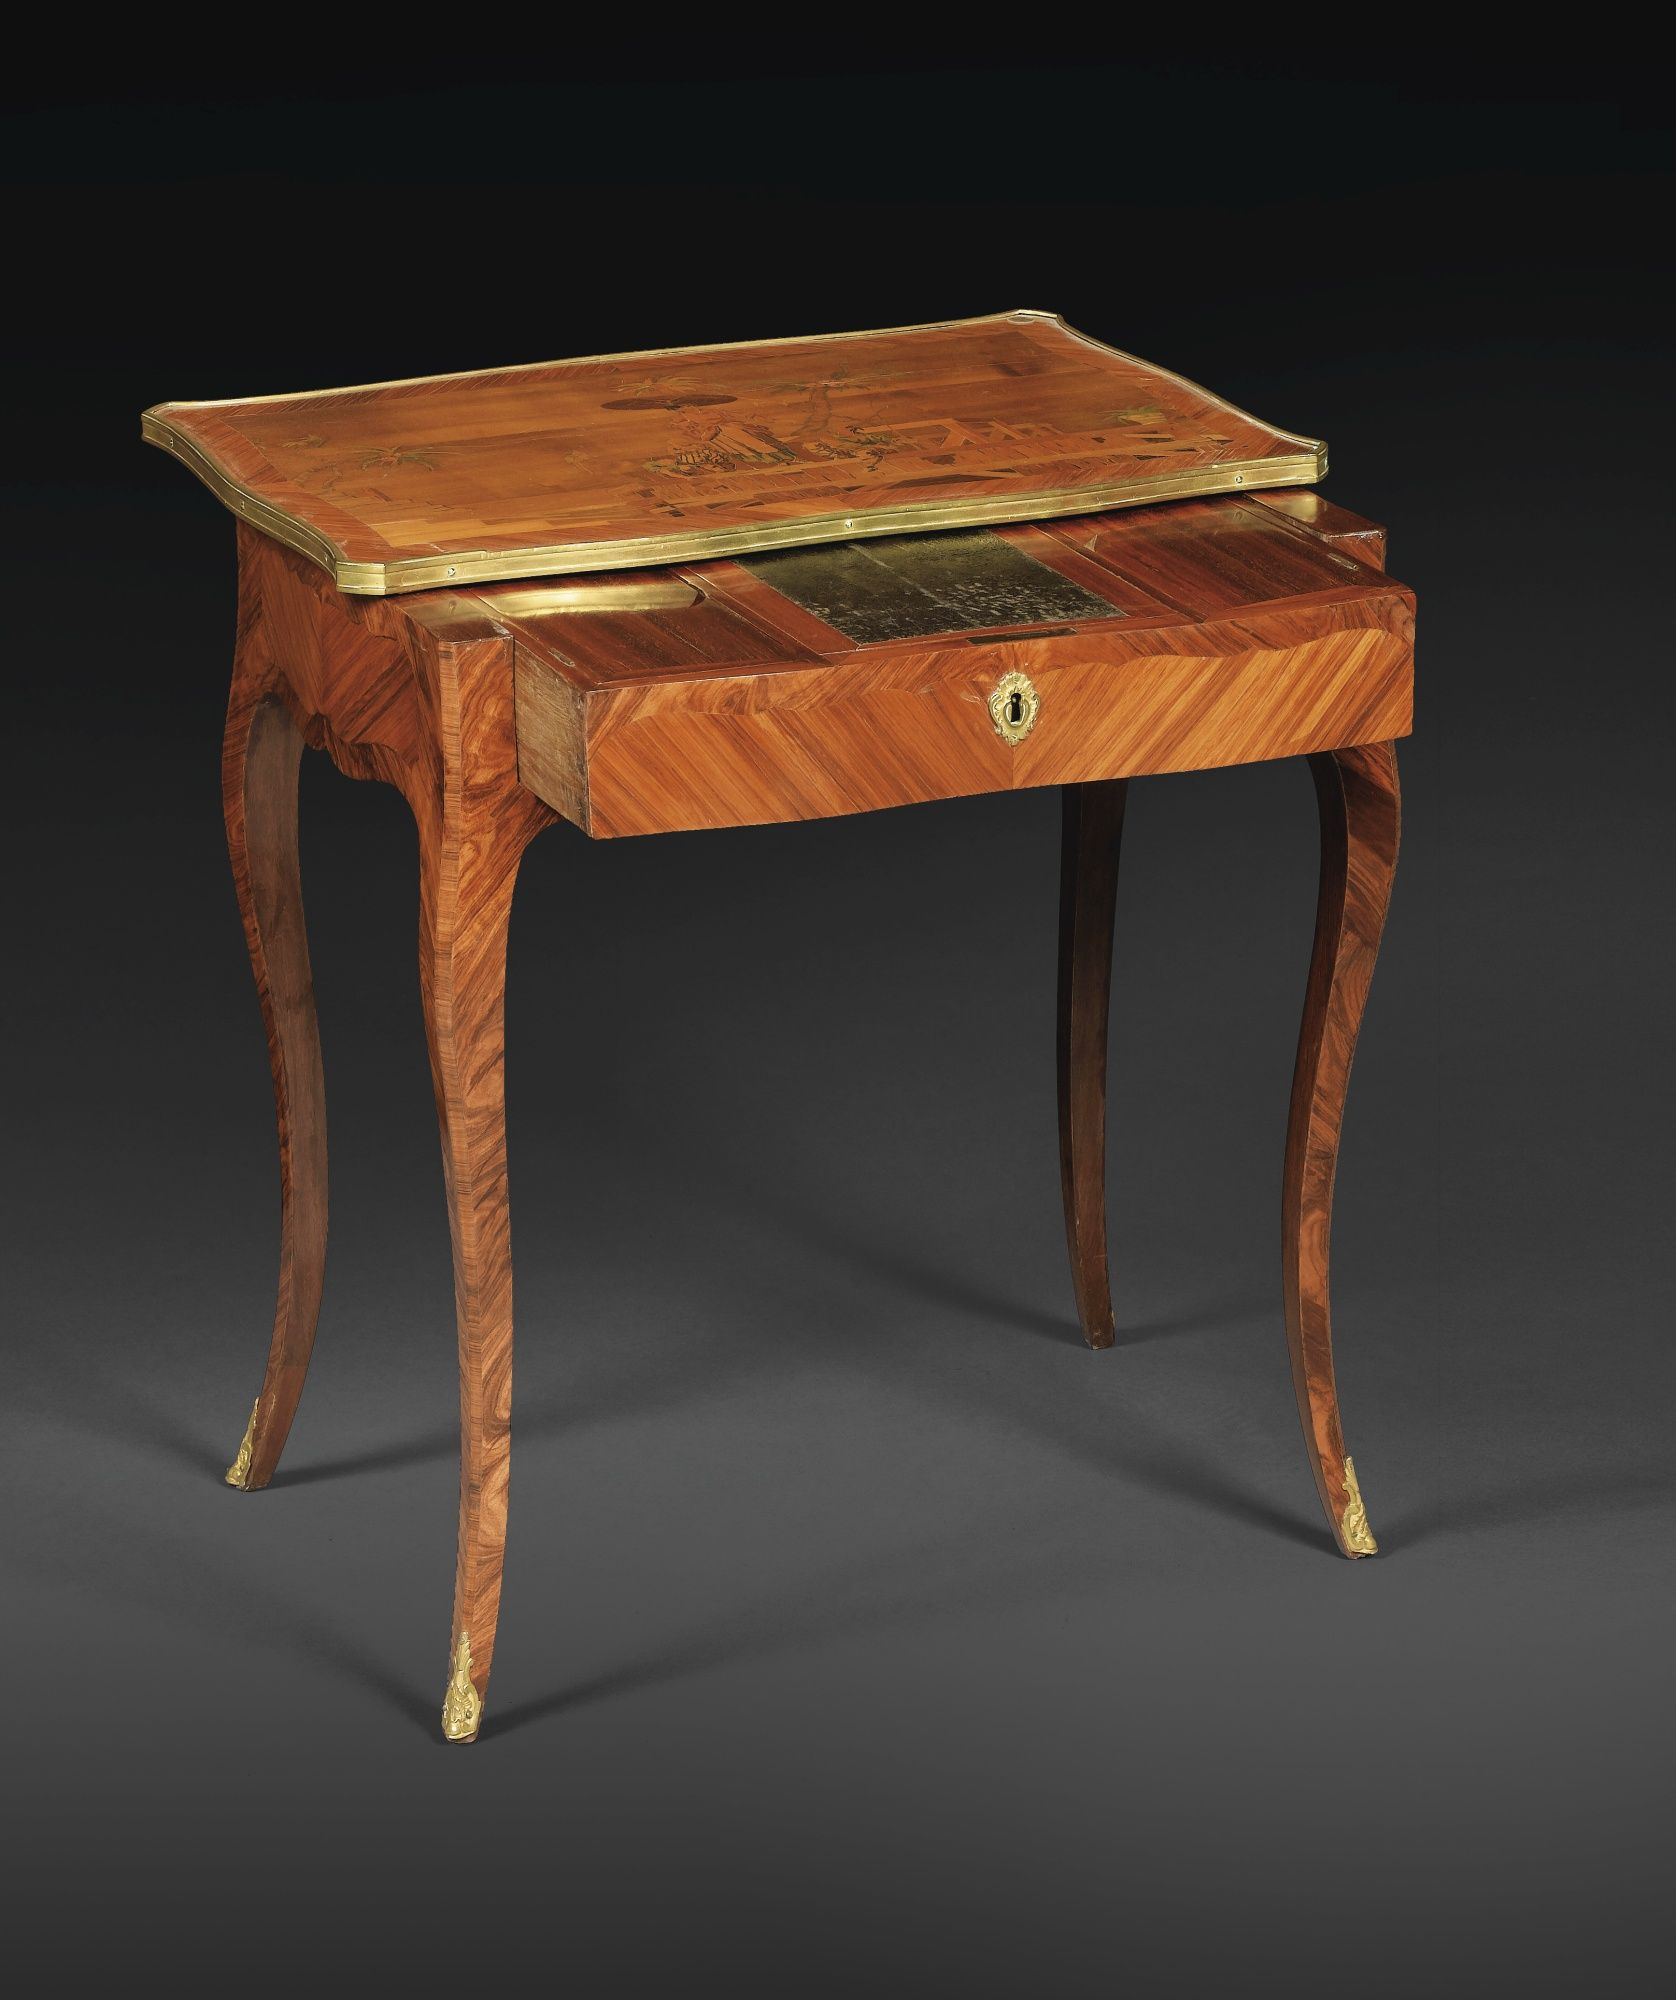 date unspecified A LOUIS XV MARQUETRY, TULIPWOOD AND KINGWOOD VENEERED WRITING TABLE Estimate  20,000 — 30,000  EUR 25,999 - 38,999USD. unsold